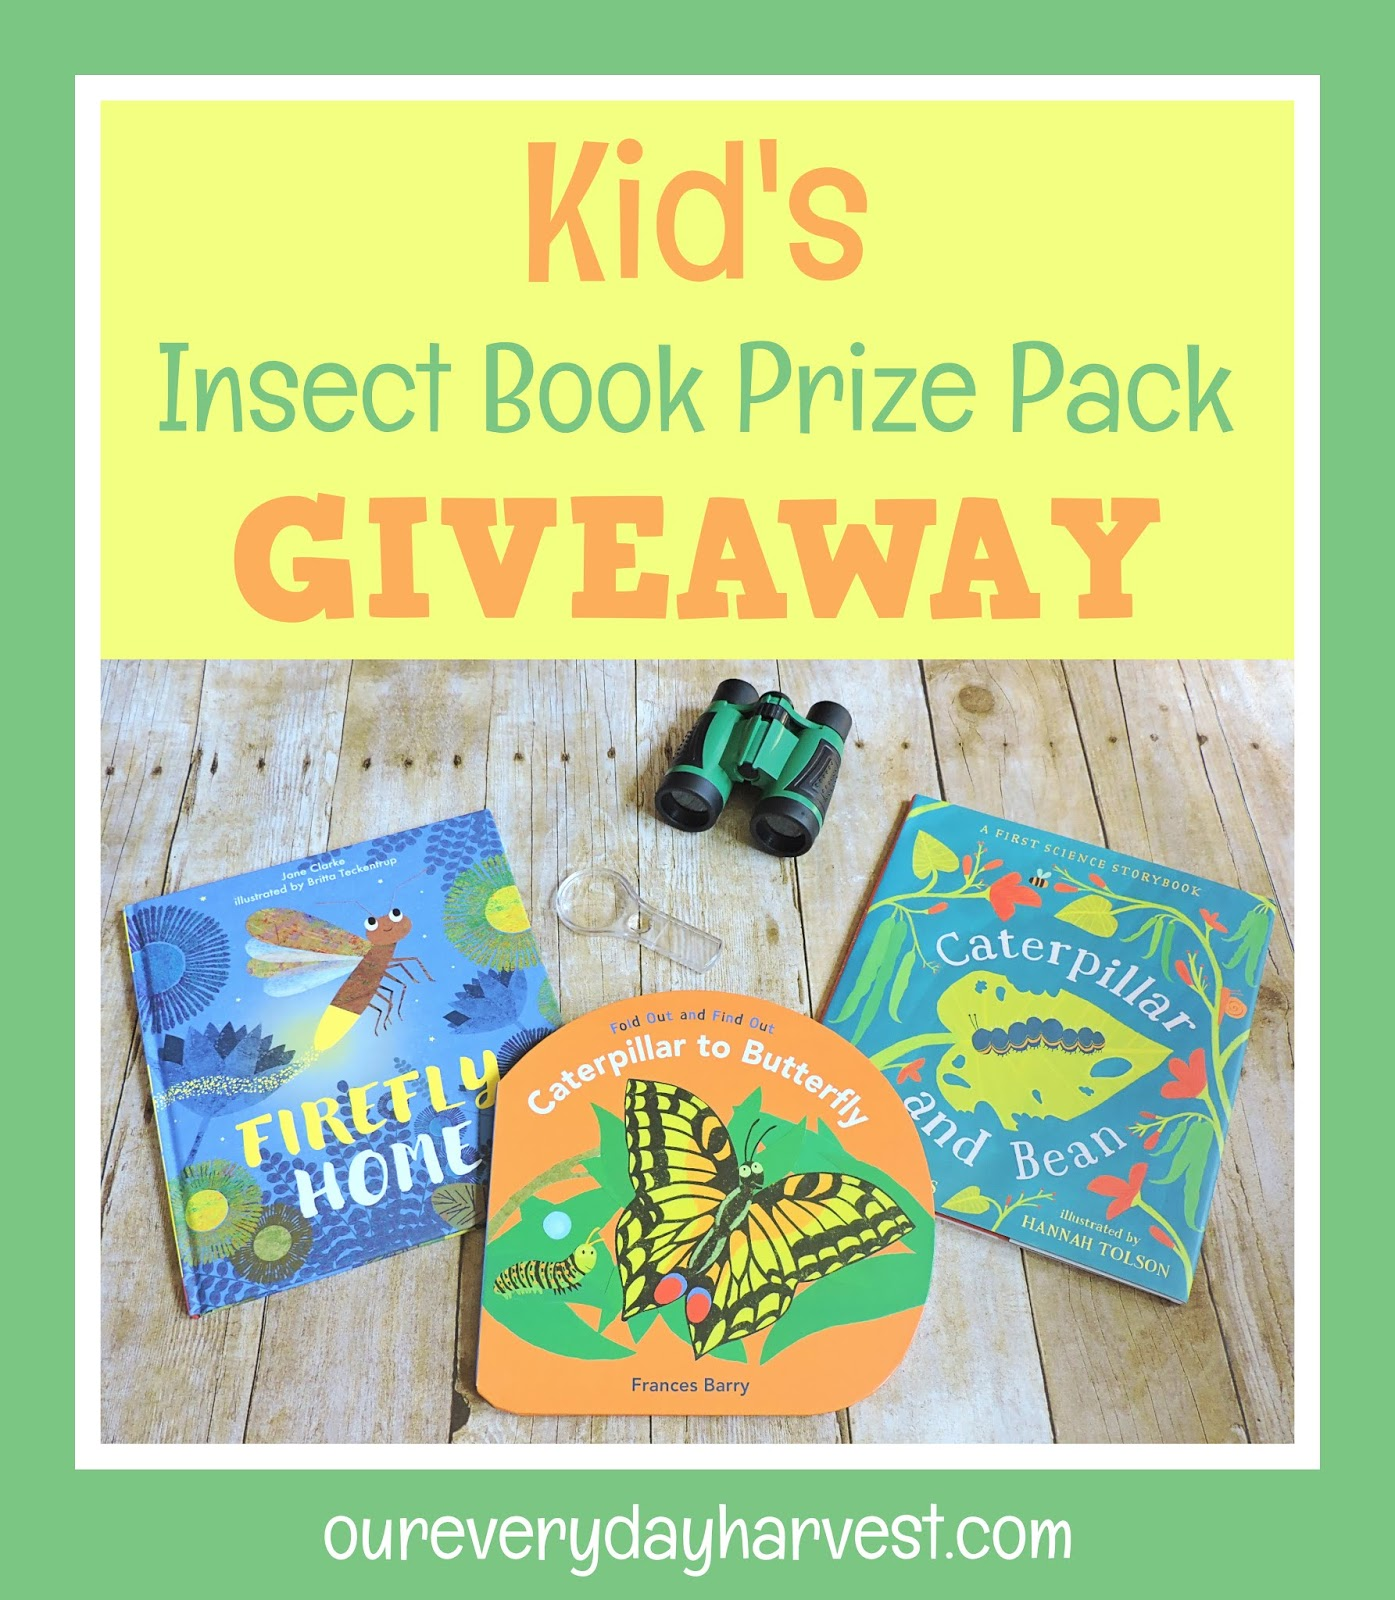 Kid's Insect Book Prize Pack Giveaway